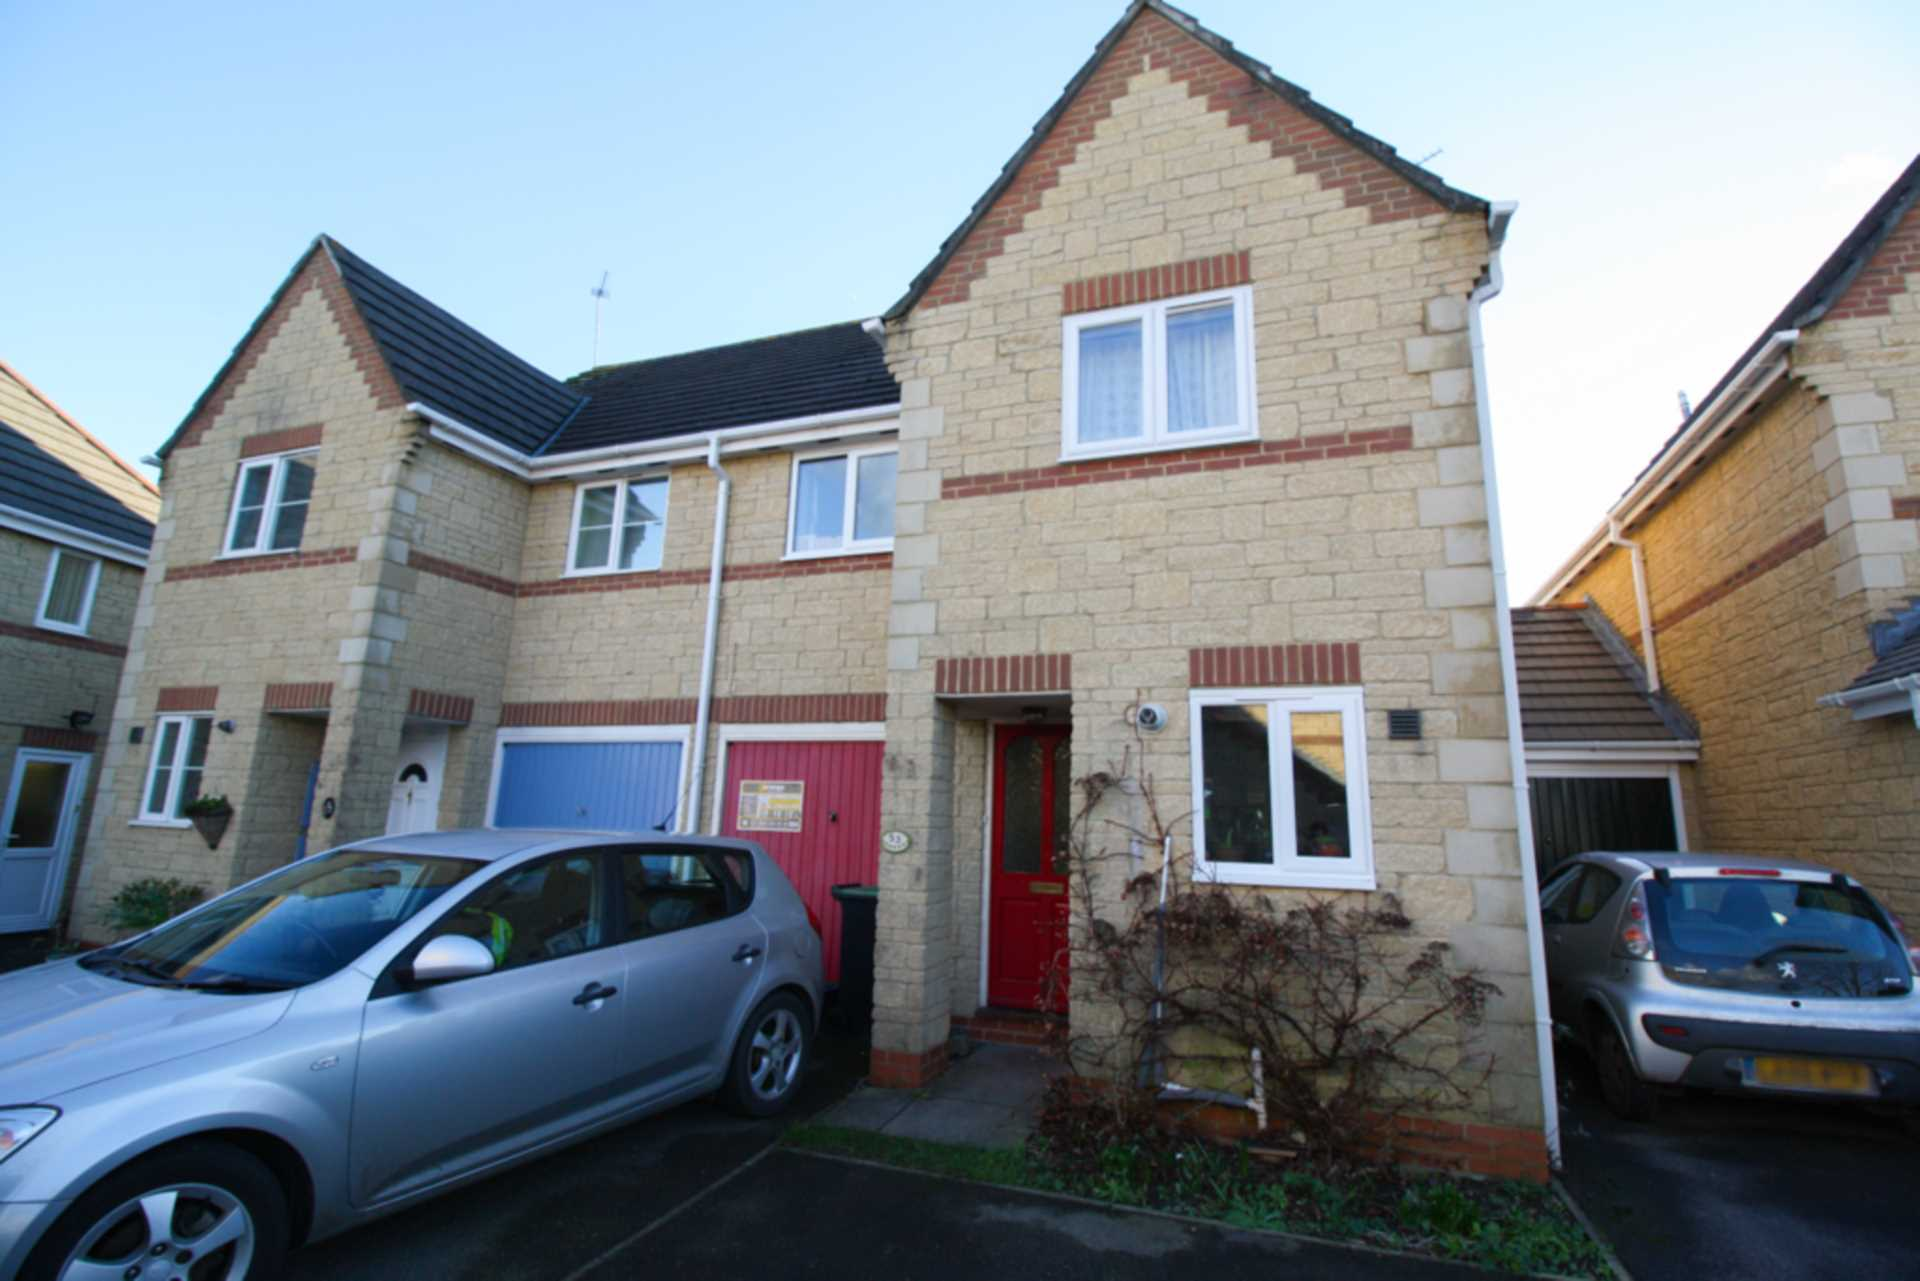 3 bed terraced house to rent in Cloverfields, Gillingham - Property Image 1